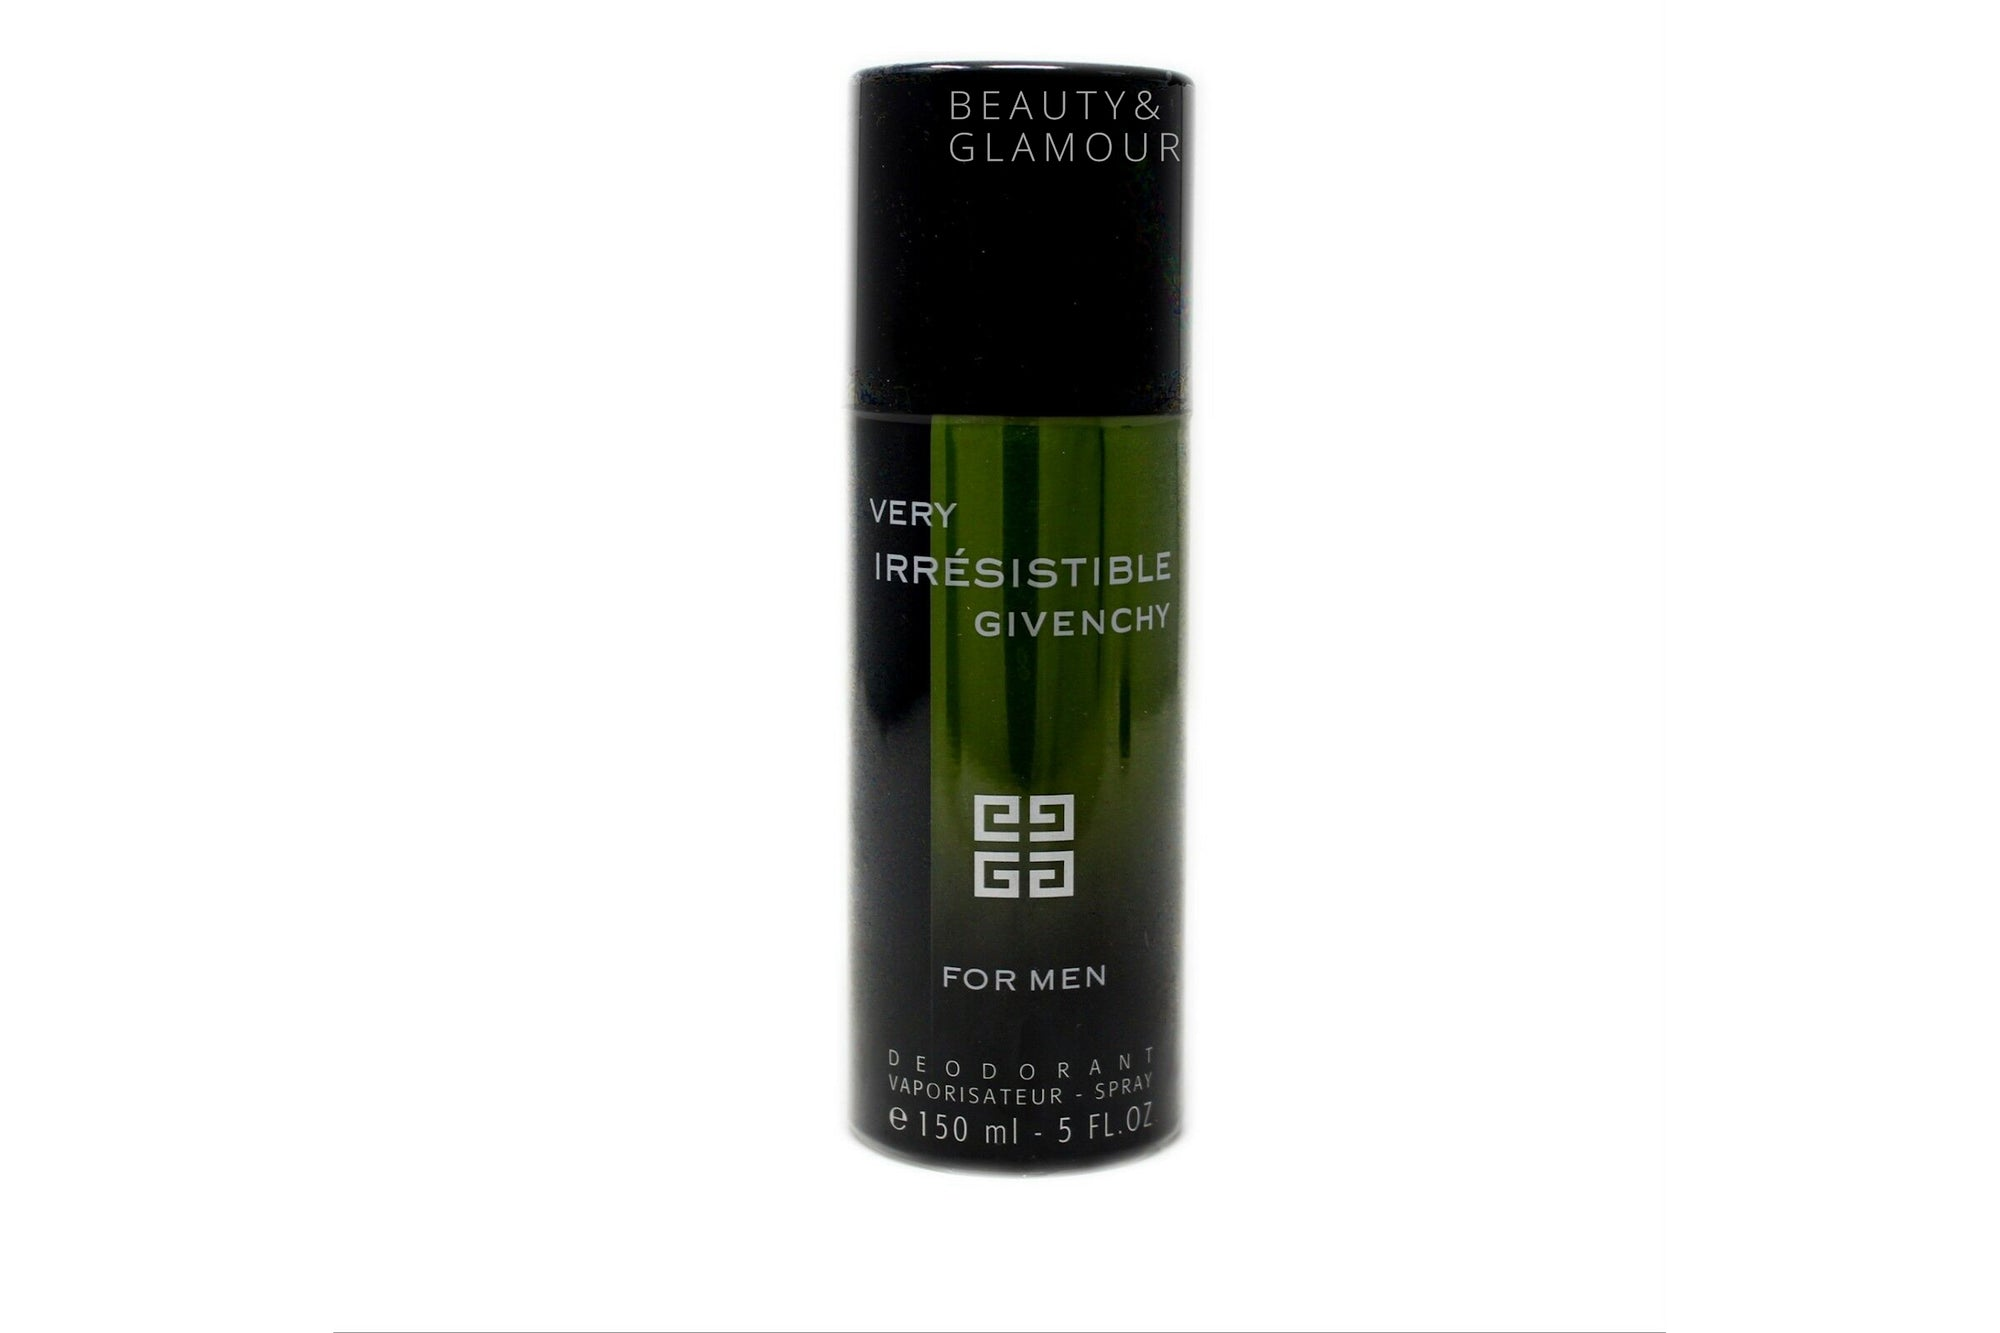 GIVENCHY VERY IRRESISTIBLE FOR MEN DEODORANT SPRAY